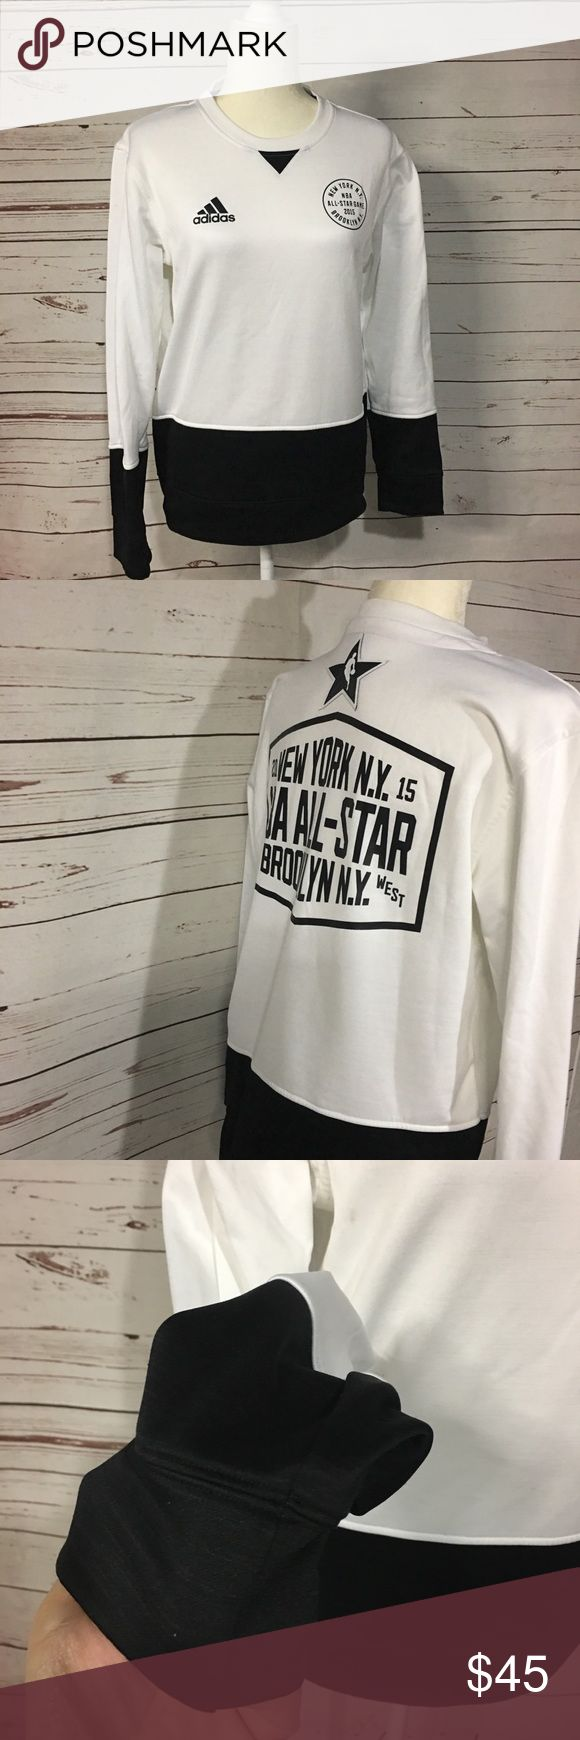 Home all star all star game 2015 comprare canotta nba all - New York Adidas 2015 Nba All Star Game Sweatshirt